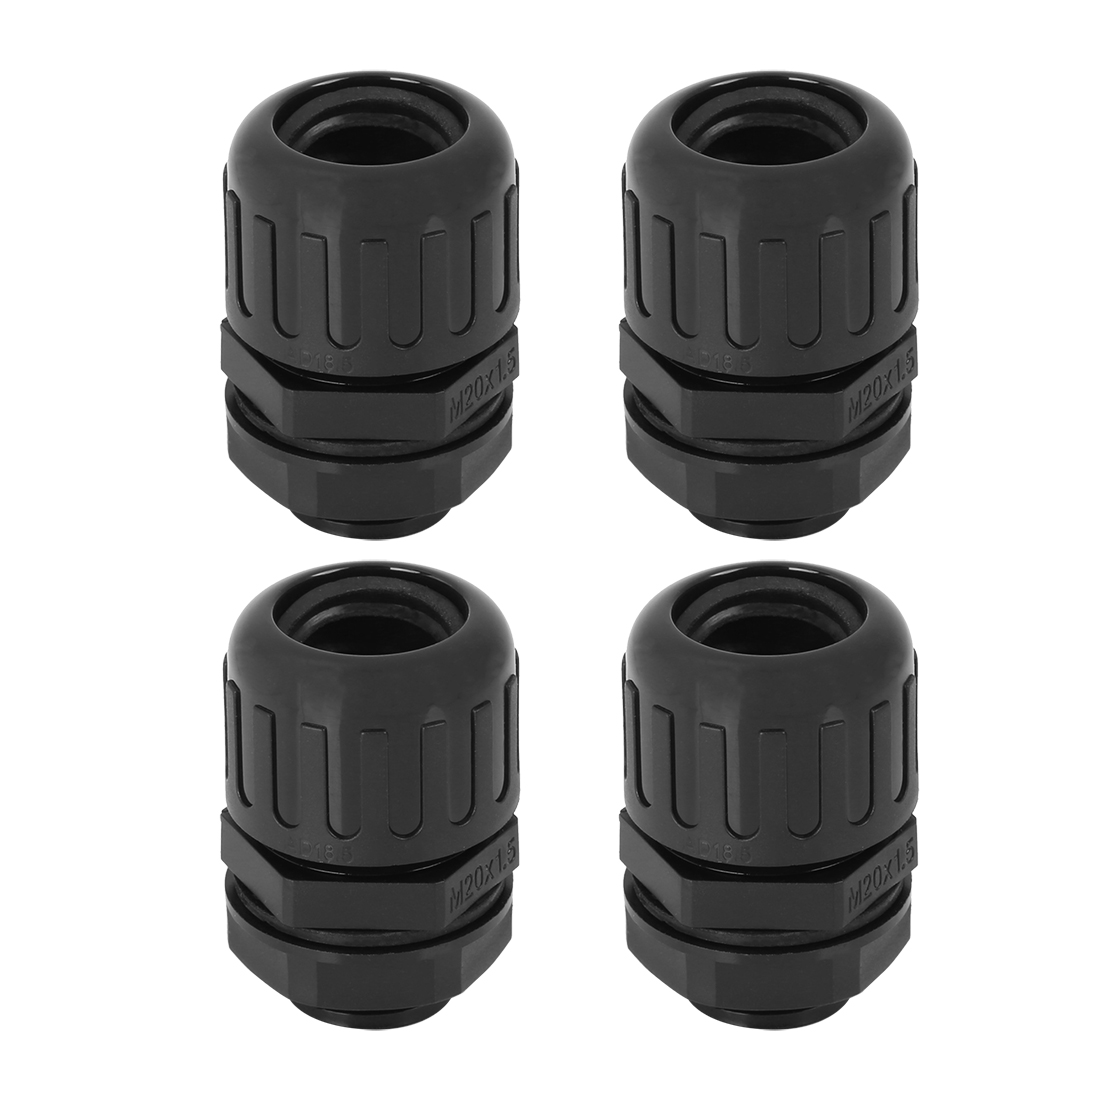 Cable Gland Nylon Plastic Connectors AD18.5 Pipe Joint Clamps M20X1.5 4pcs